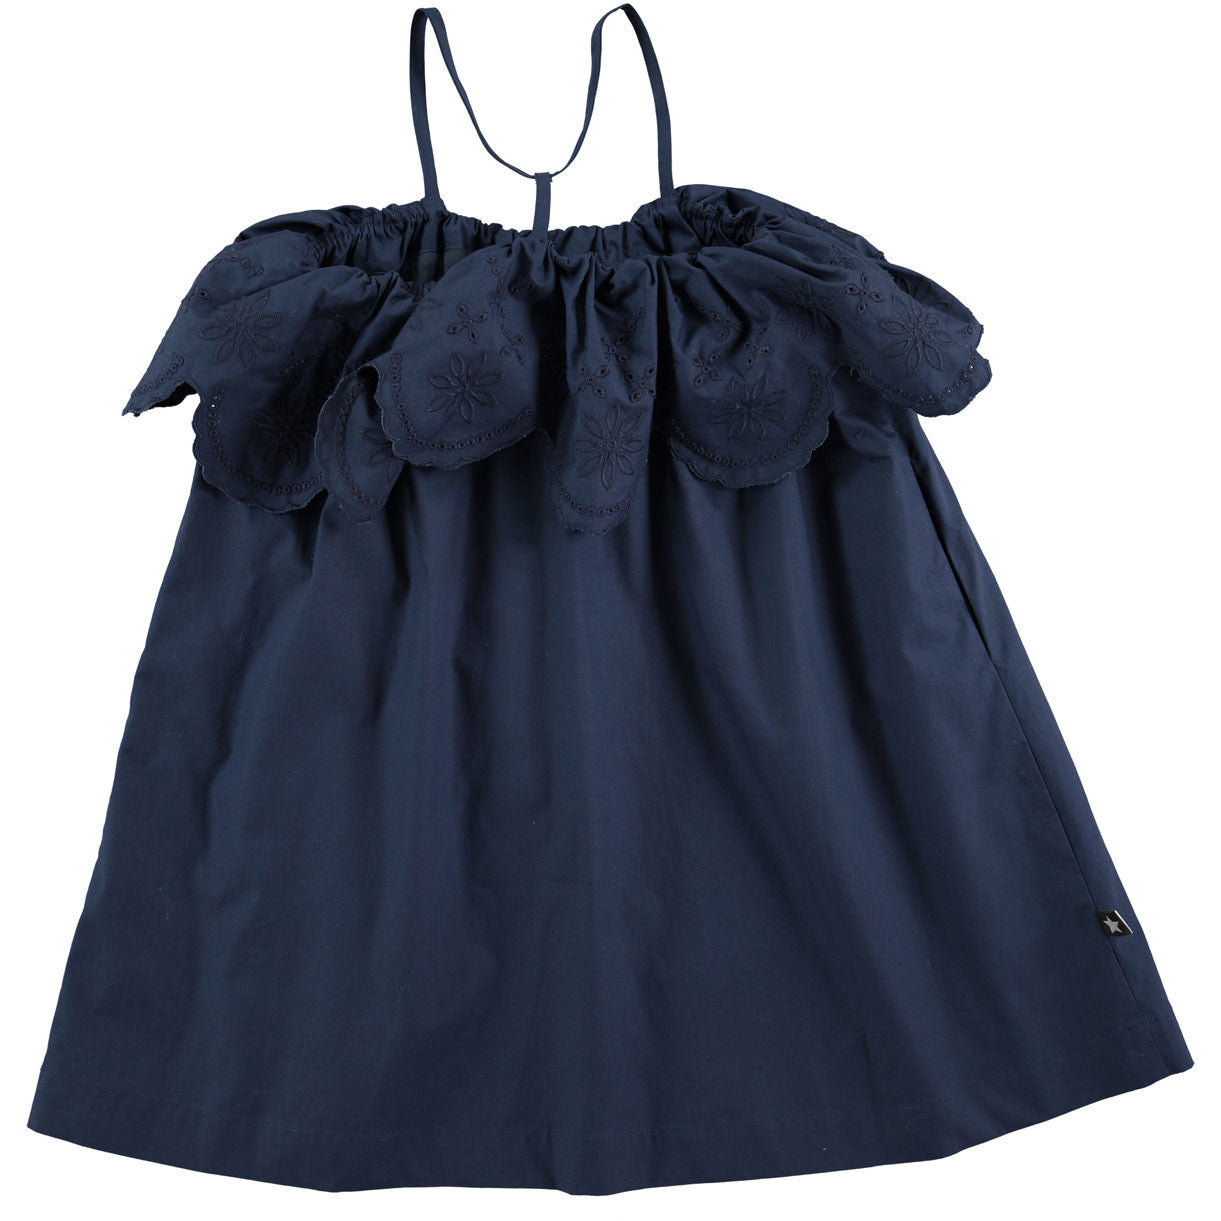 Molo Navy Eyelet Ruffle Dress